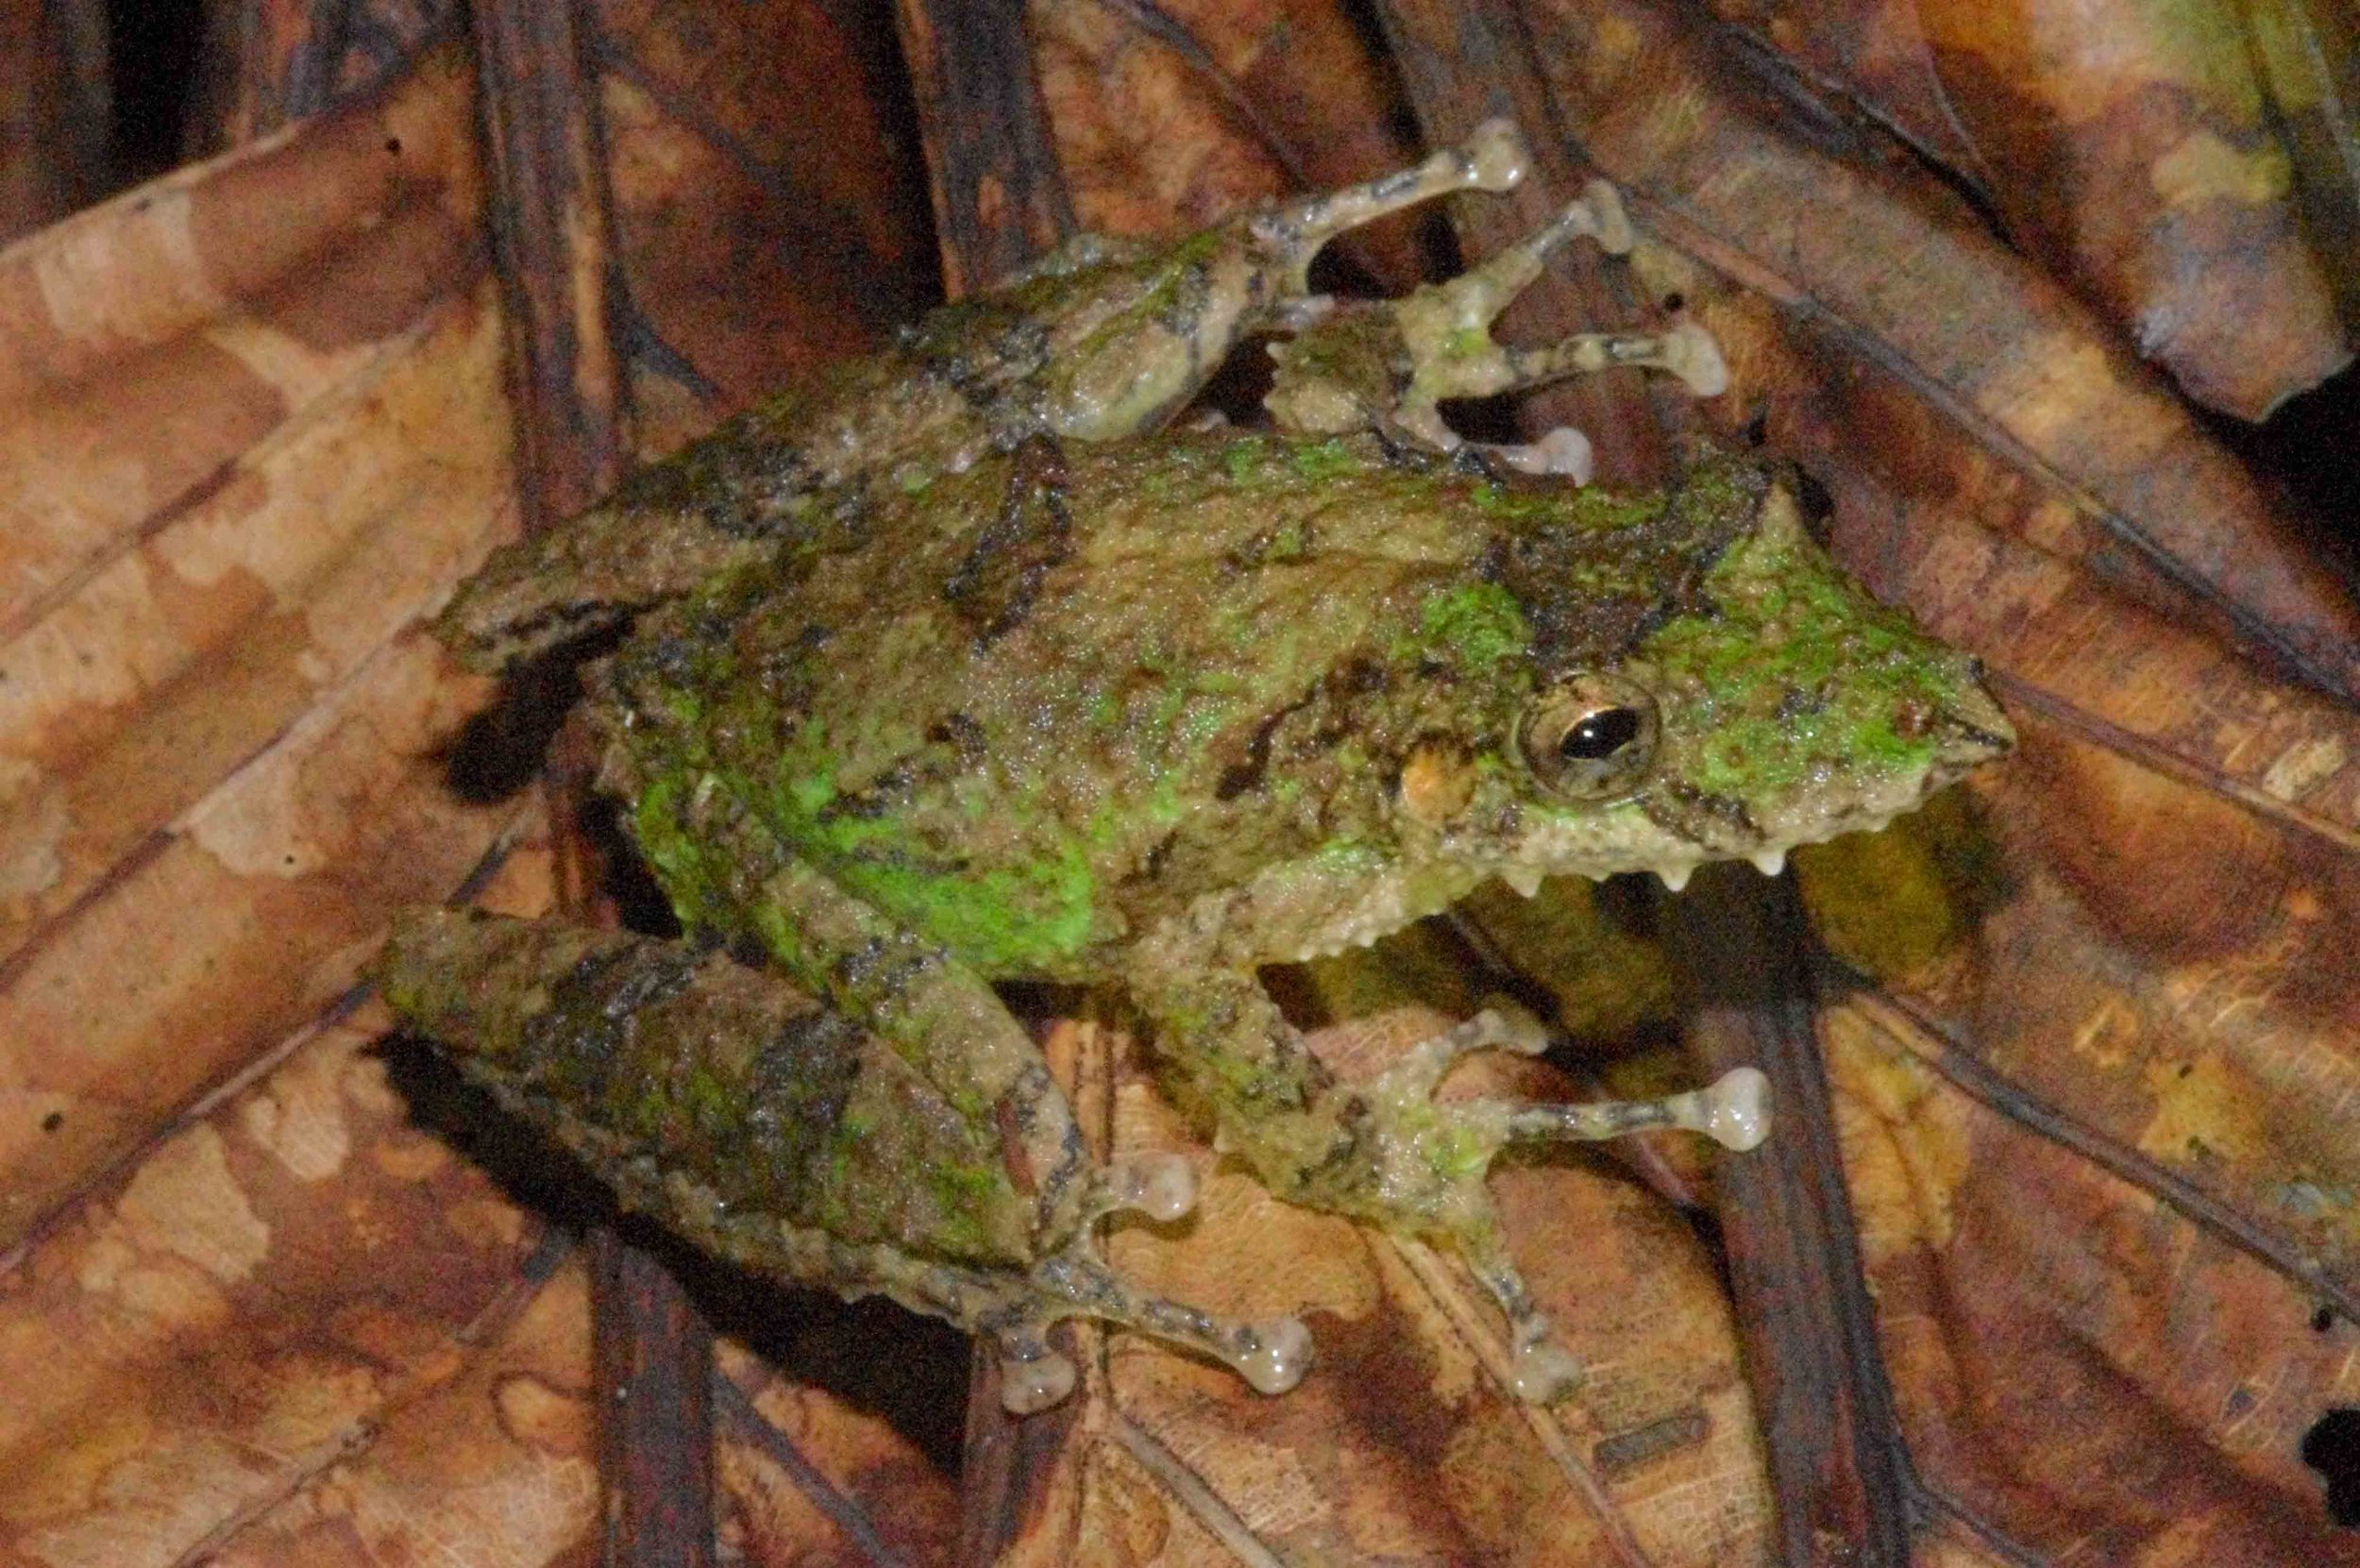 Scinax garbei, Fringe Lipped Treefrog (Photo by Matt Cage)